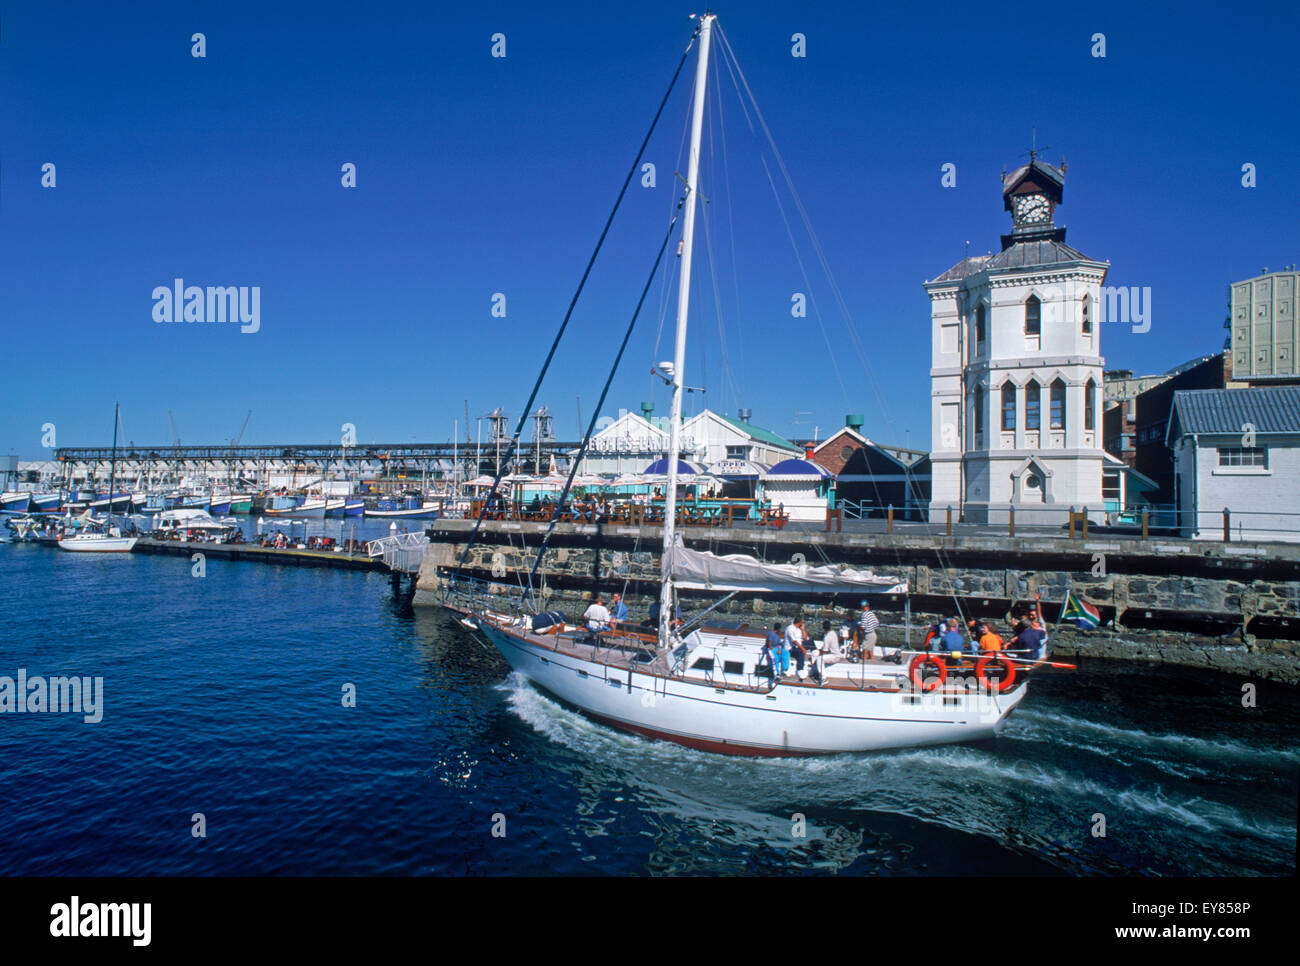 Sailboat leaving Victoria Basin in Cape Town, South Africa - Stock Image